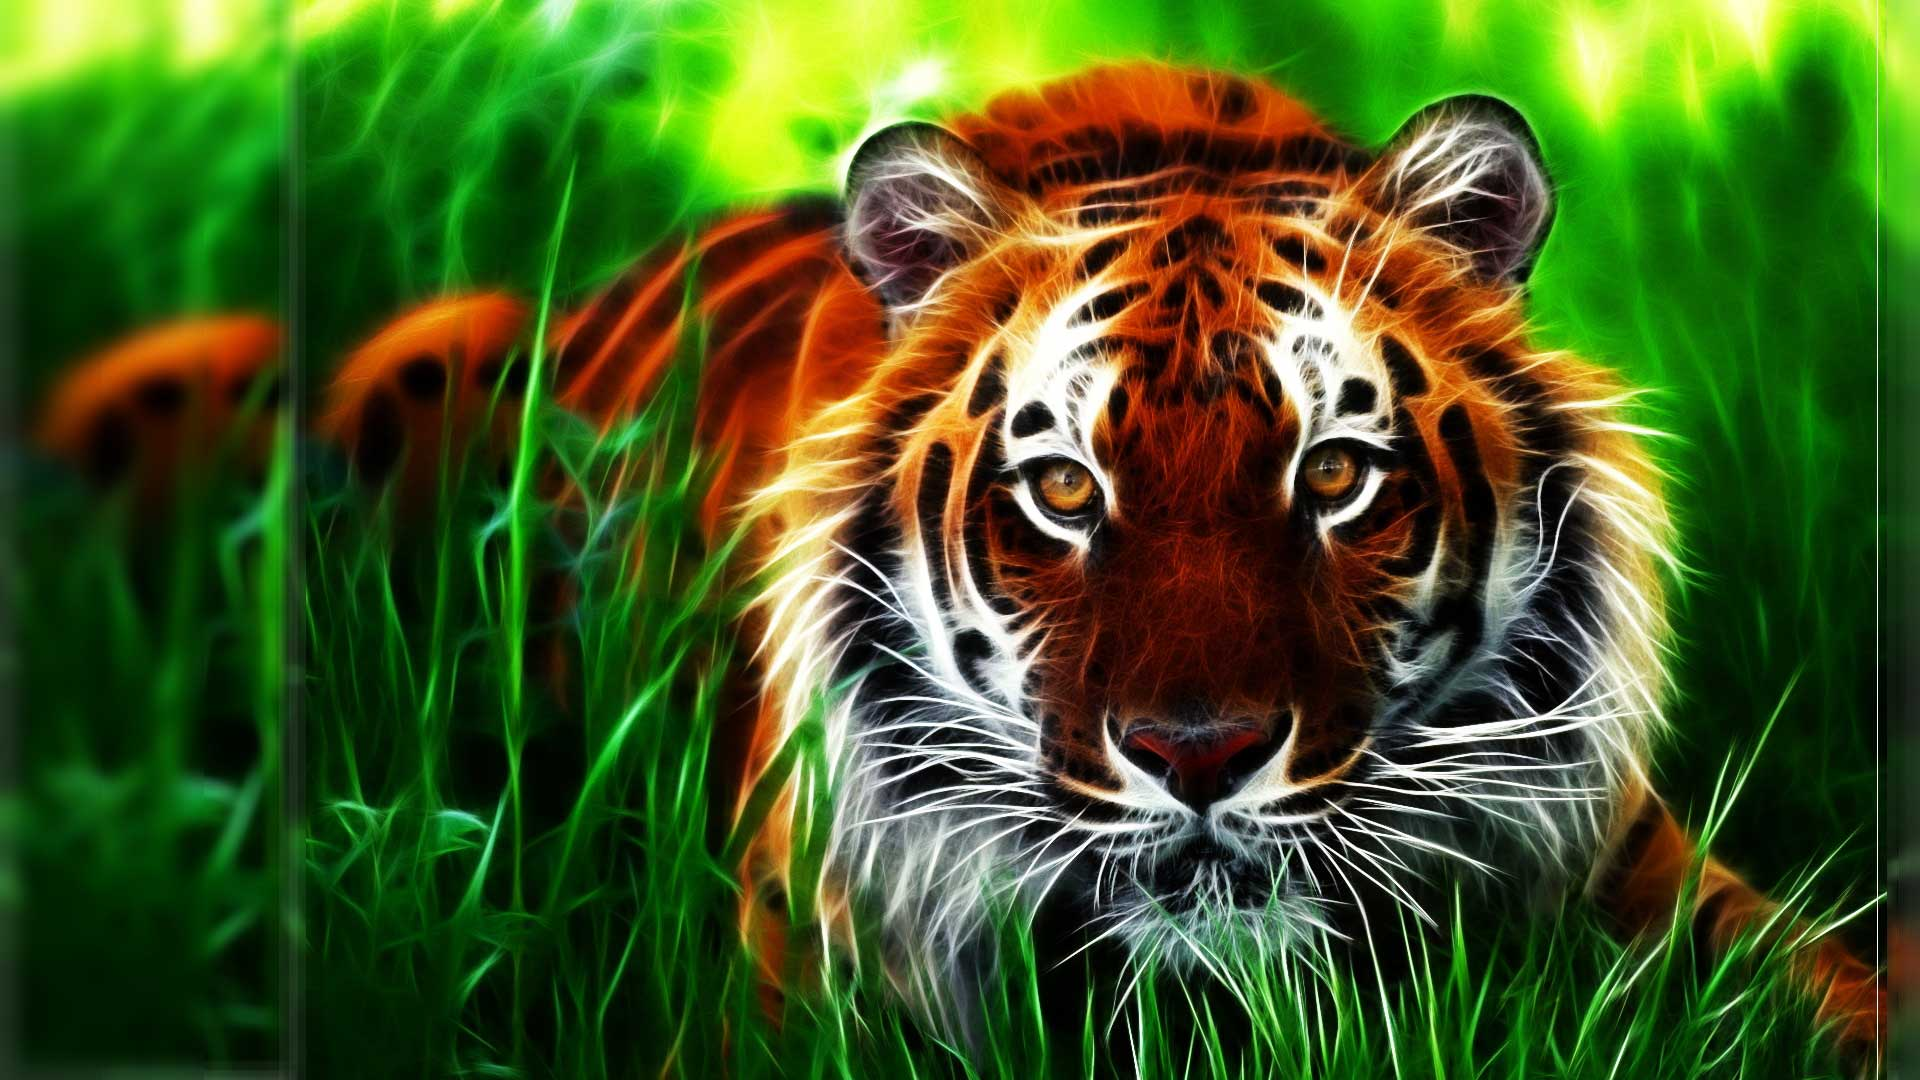 Tiger 3d Wallpaper